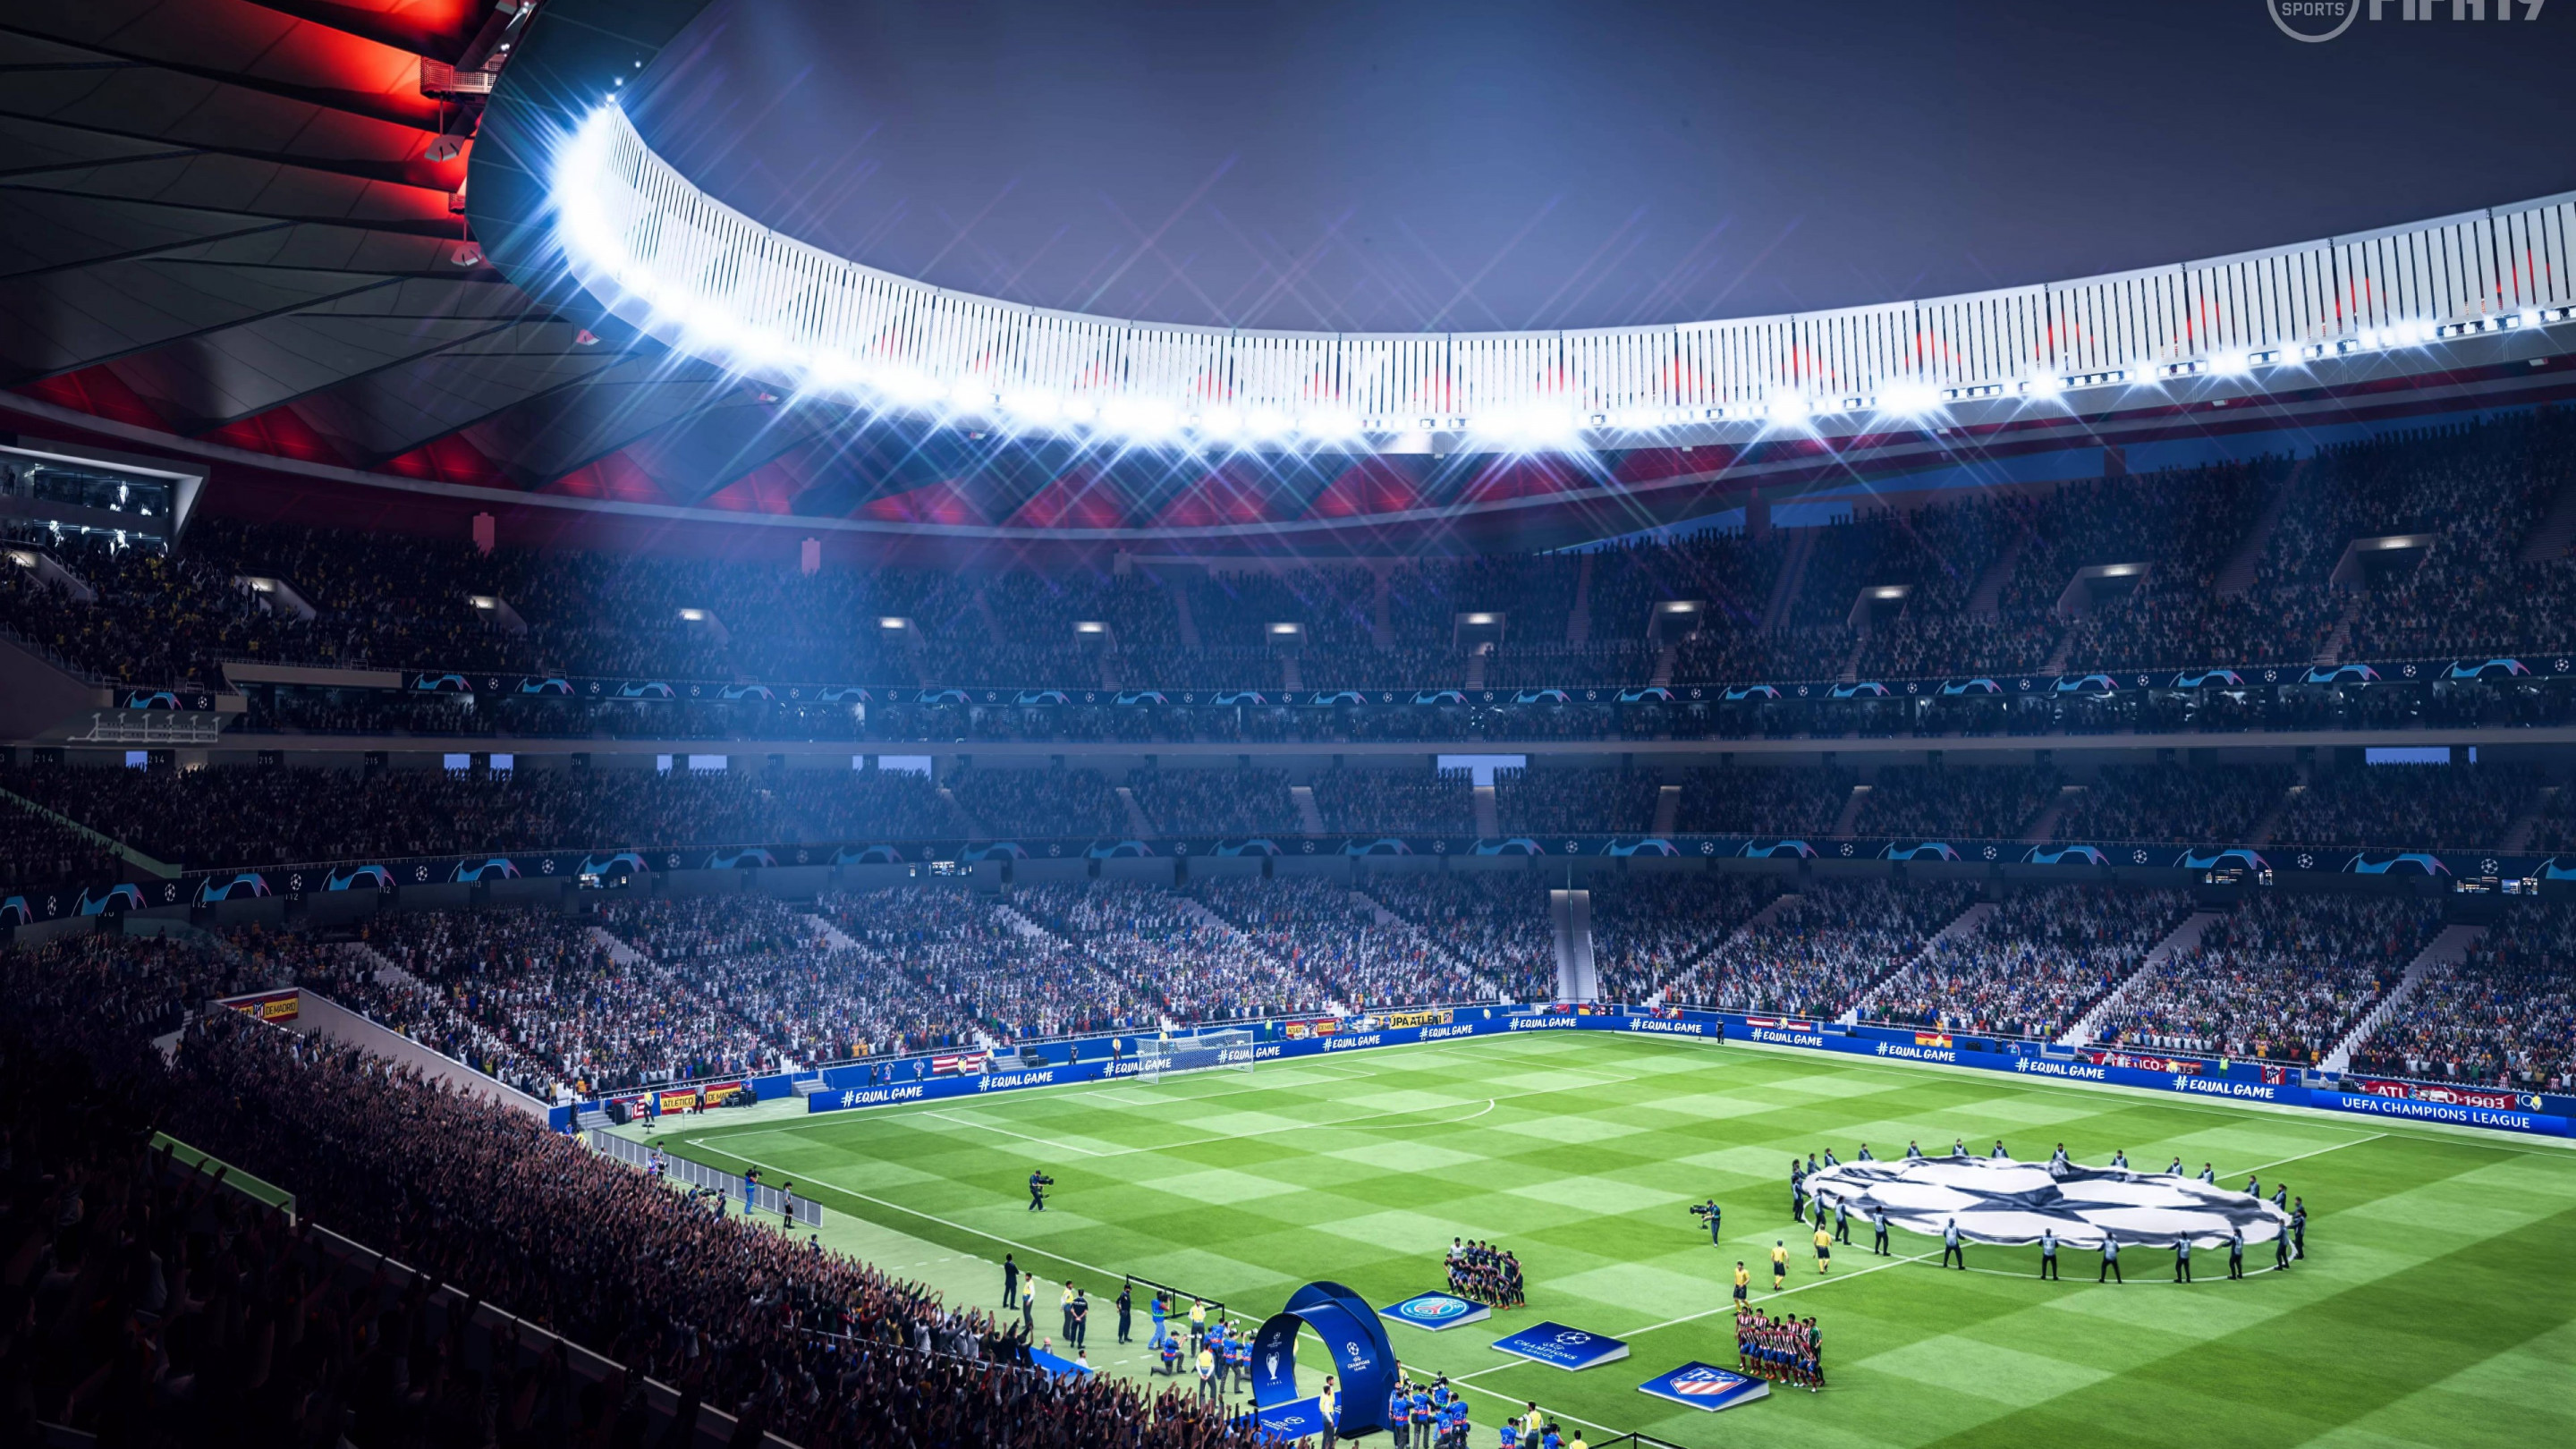 Fifa 19 stadium wallpaper 2880x1620